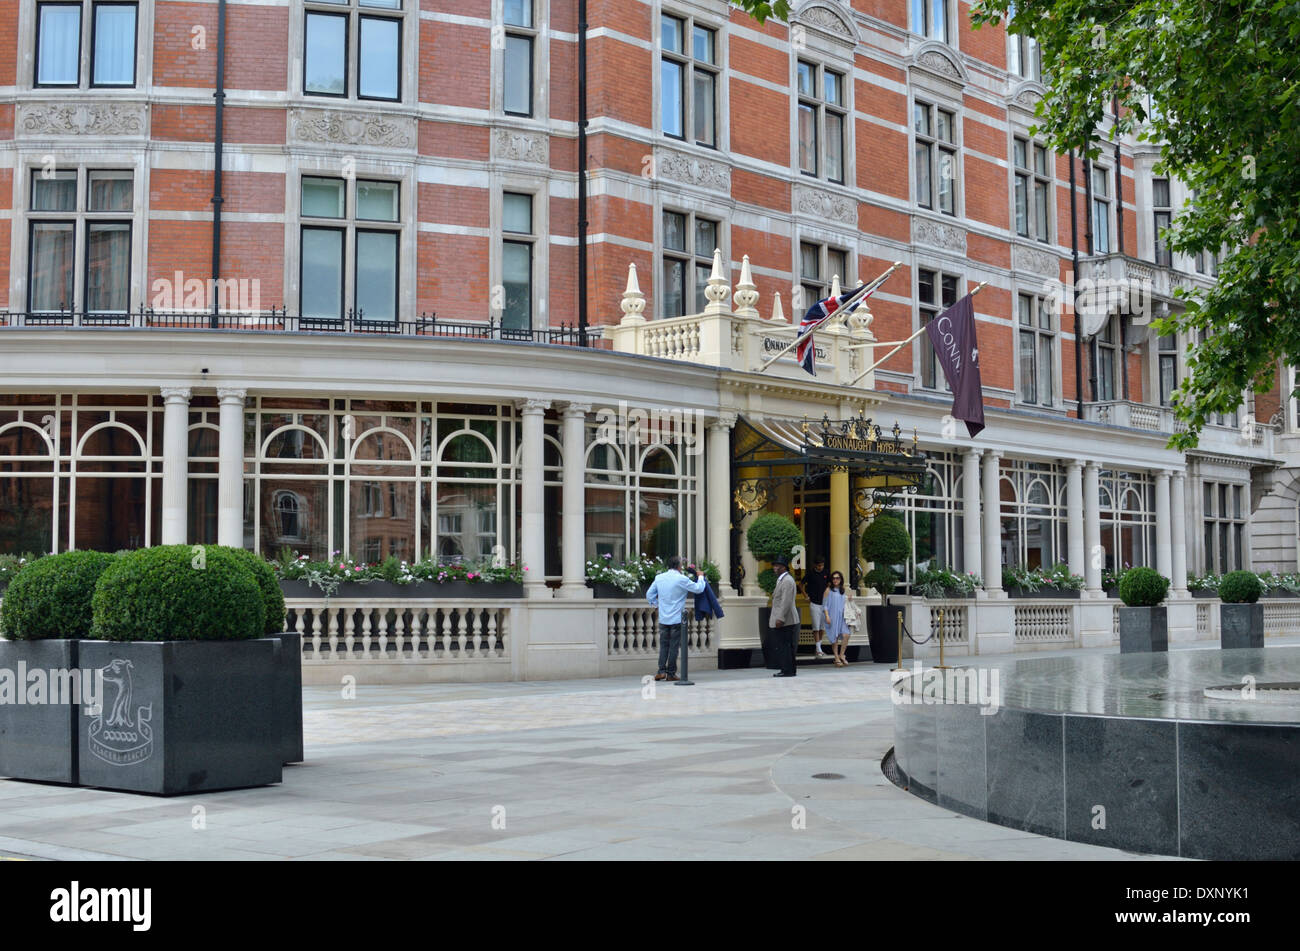 The Connaught Hotel, Mayfair, London, UK. - Stock Image